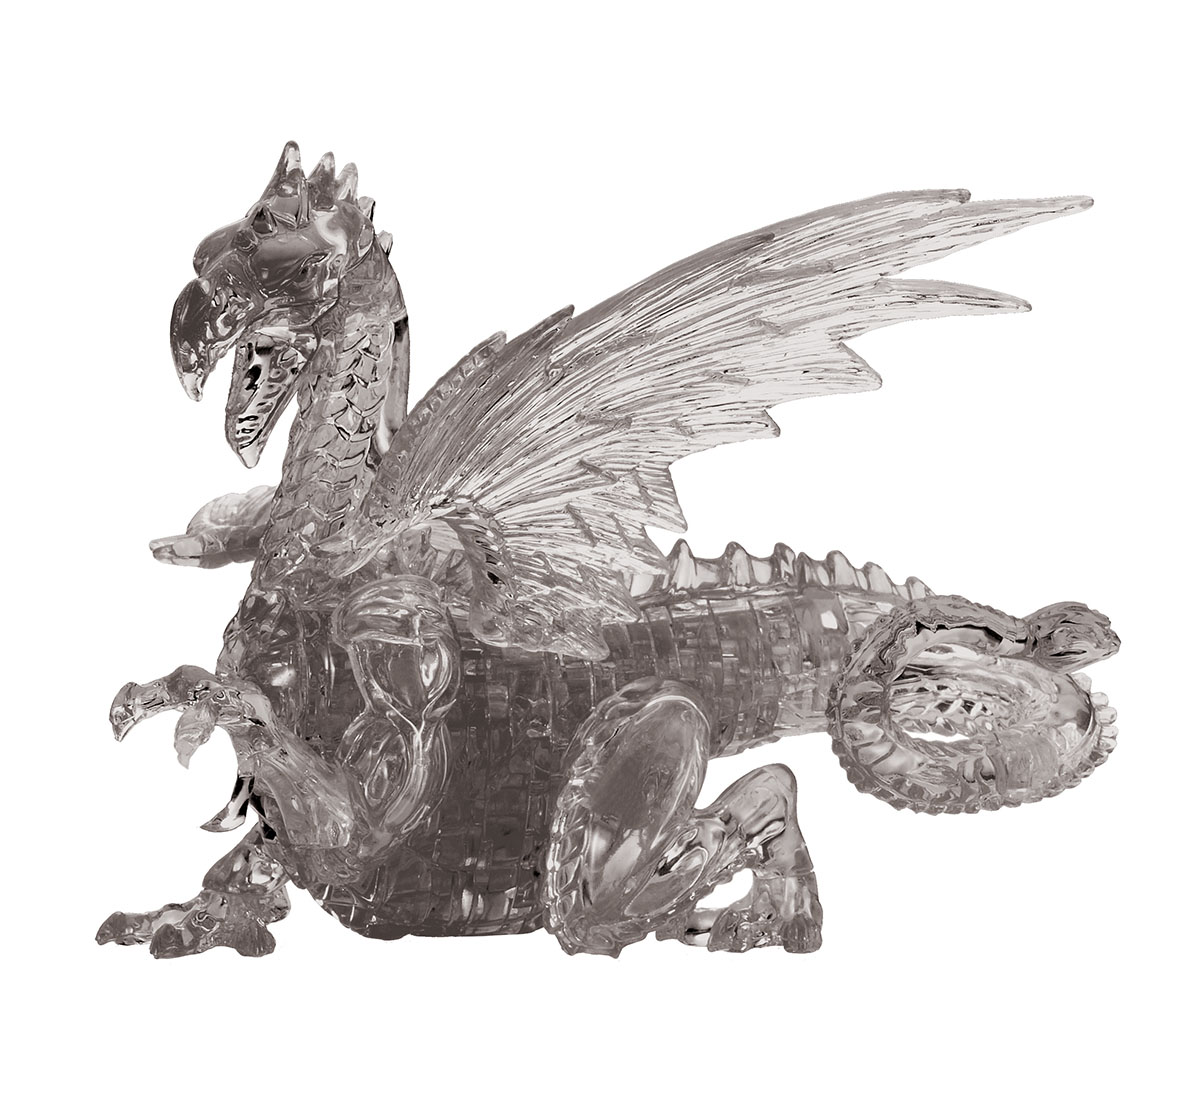 Black Dragon Dragons 3D Puzzle